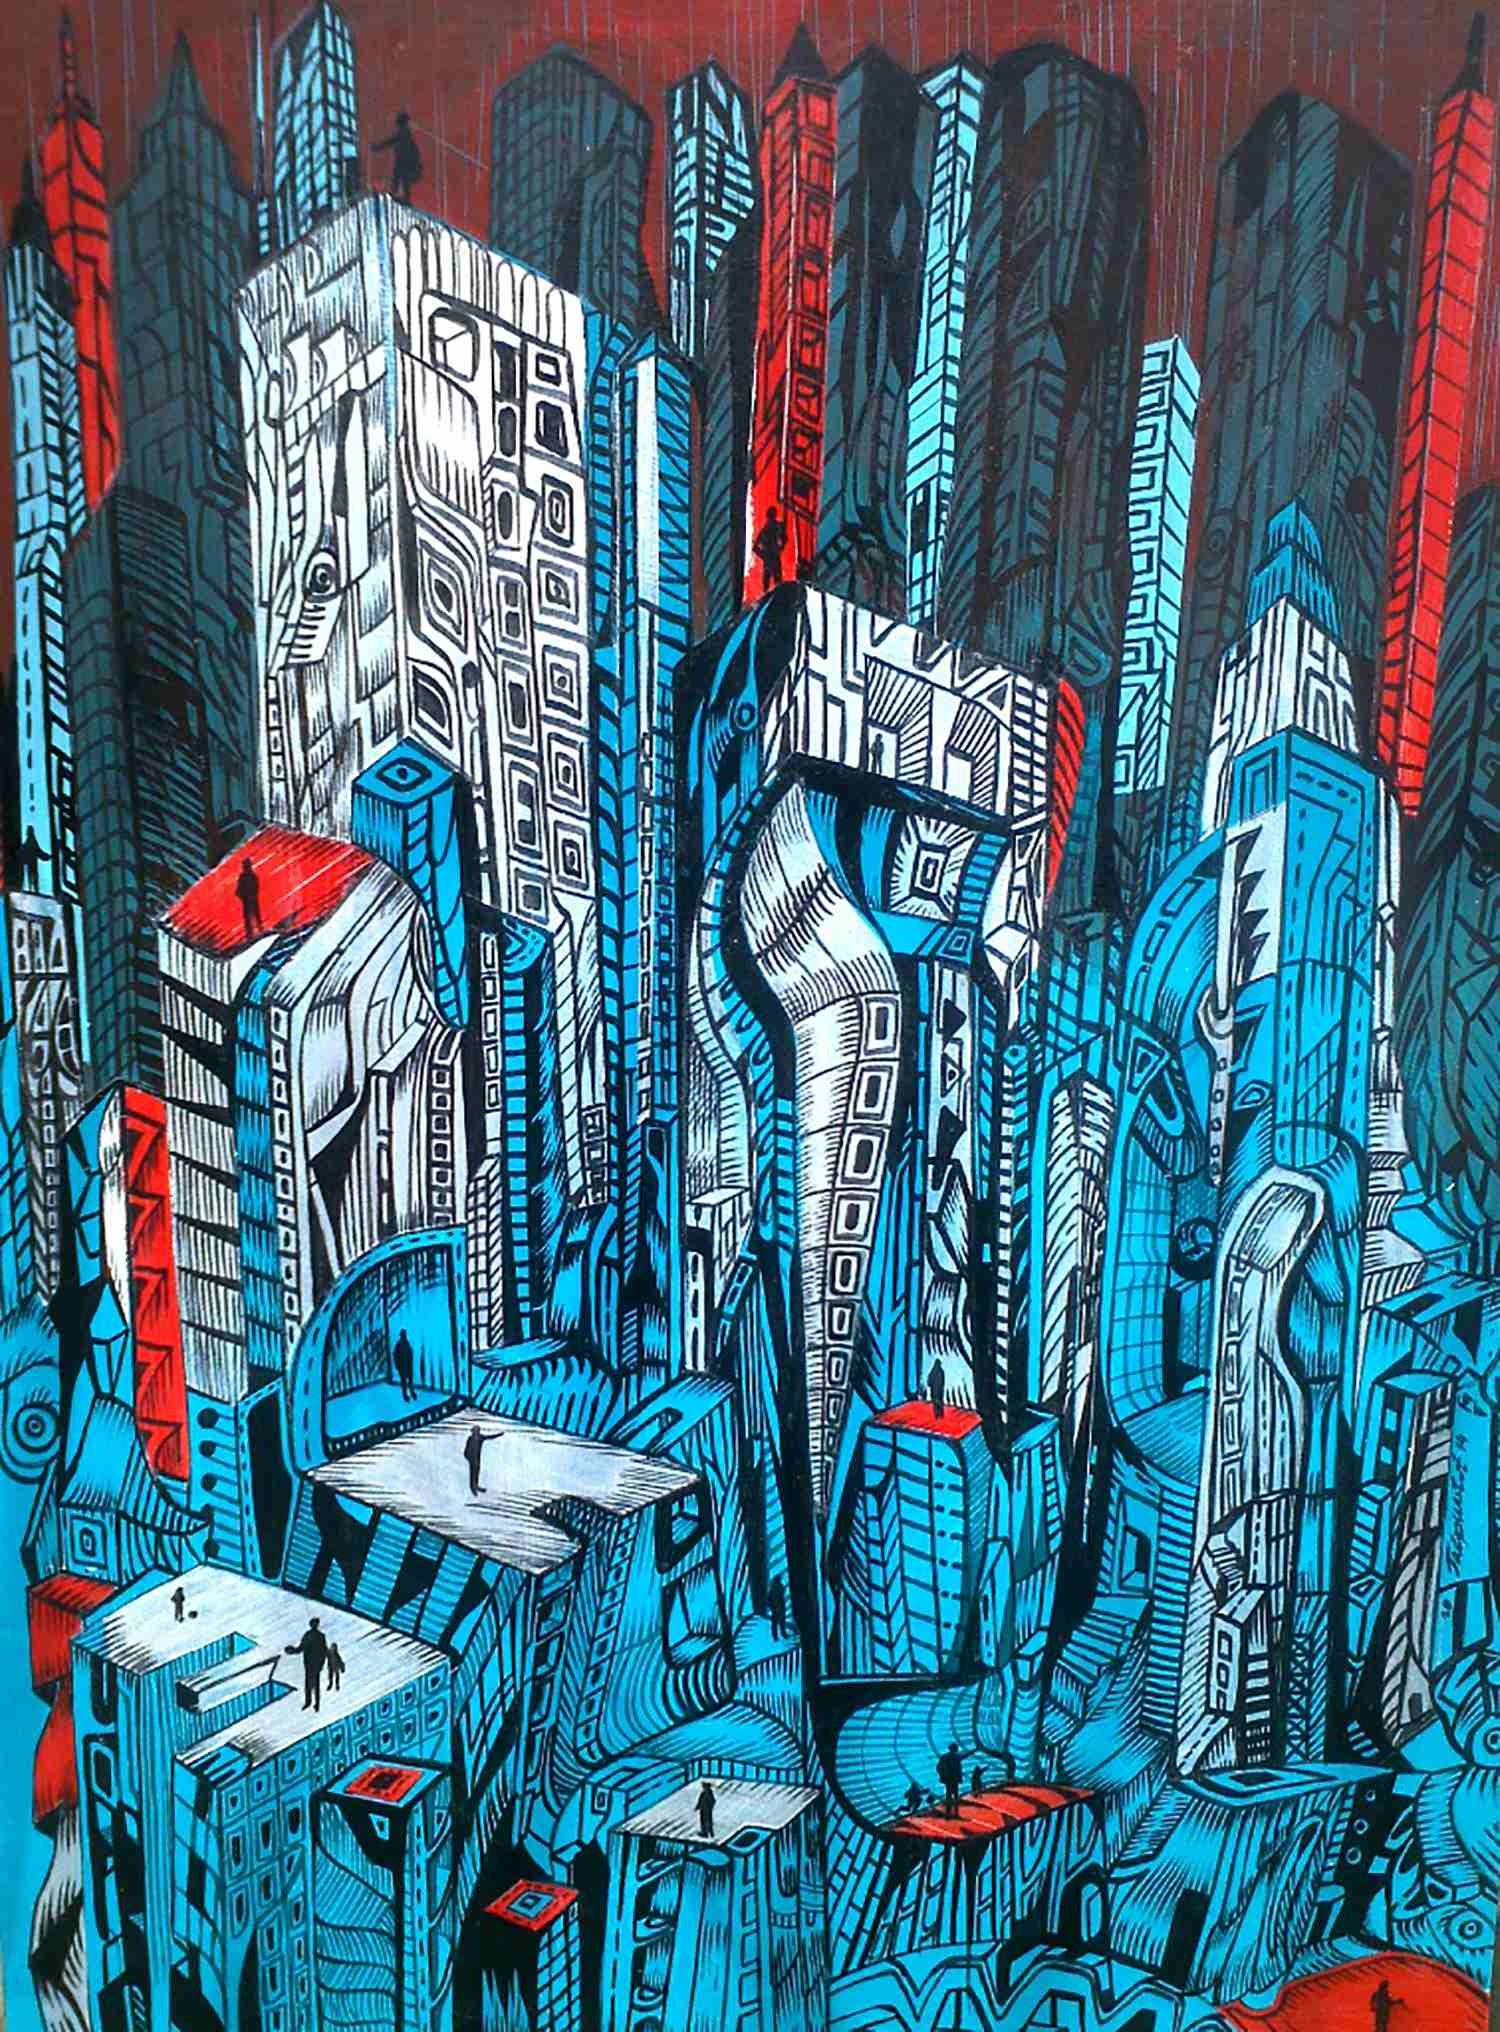 A painting of a futuristic city made with acrylic.